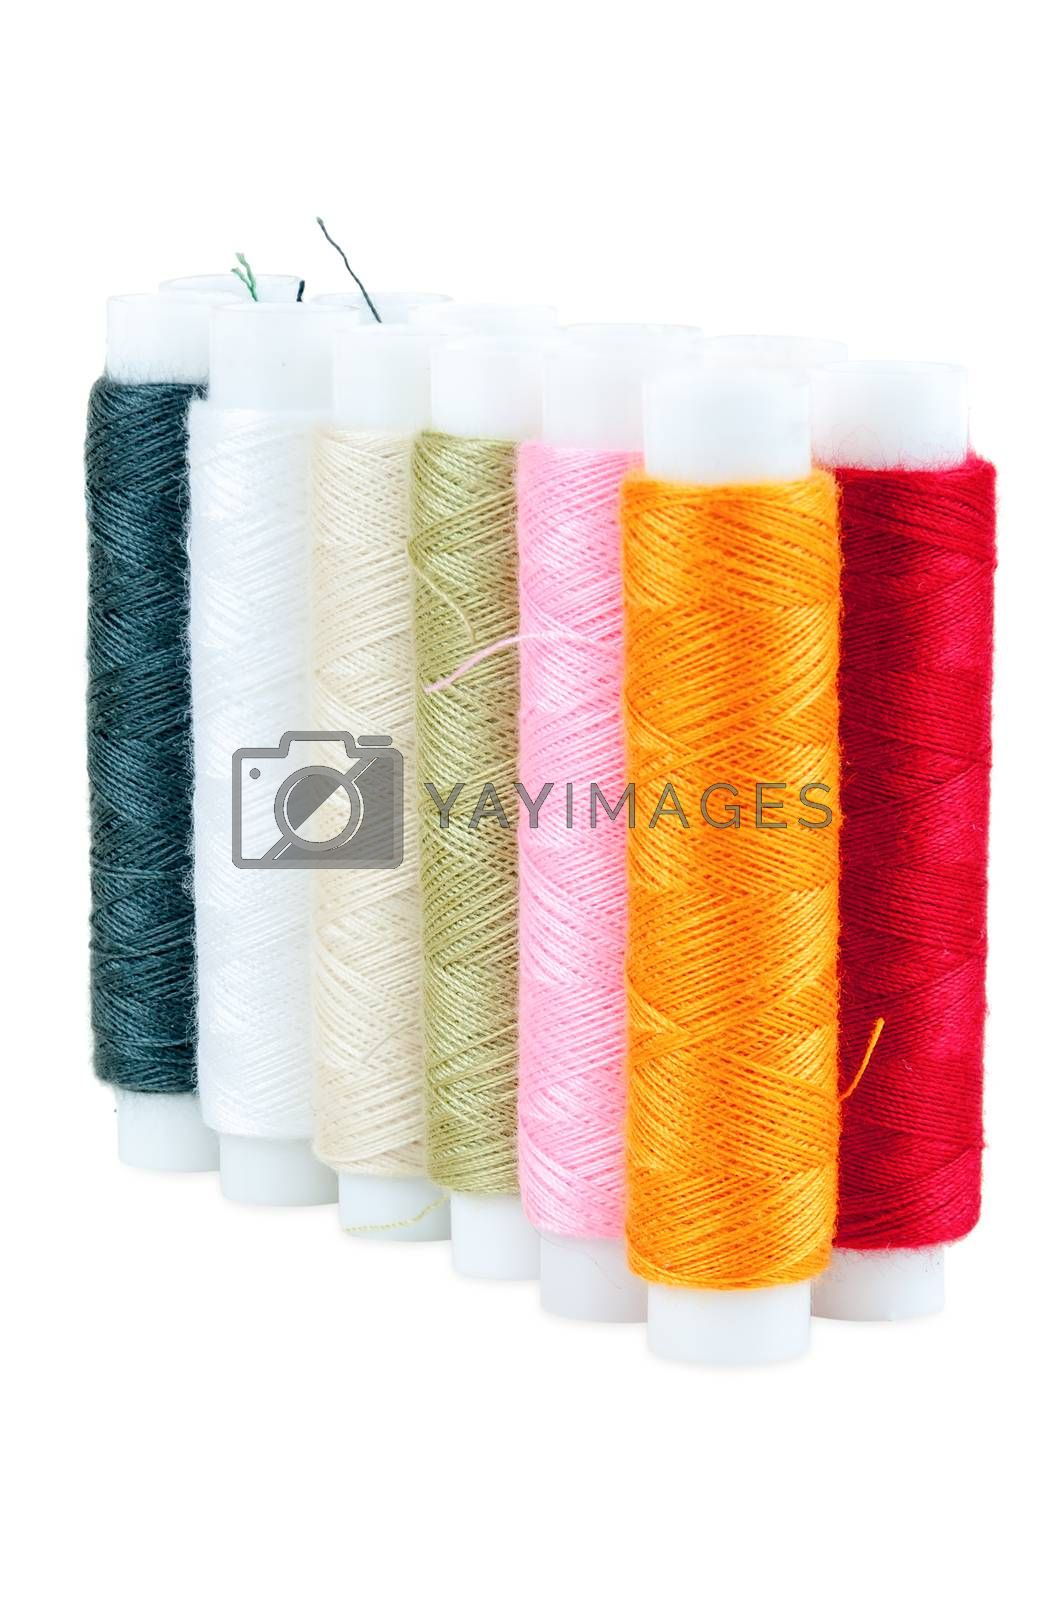 Colored spools of threads on white background by mkos83